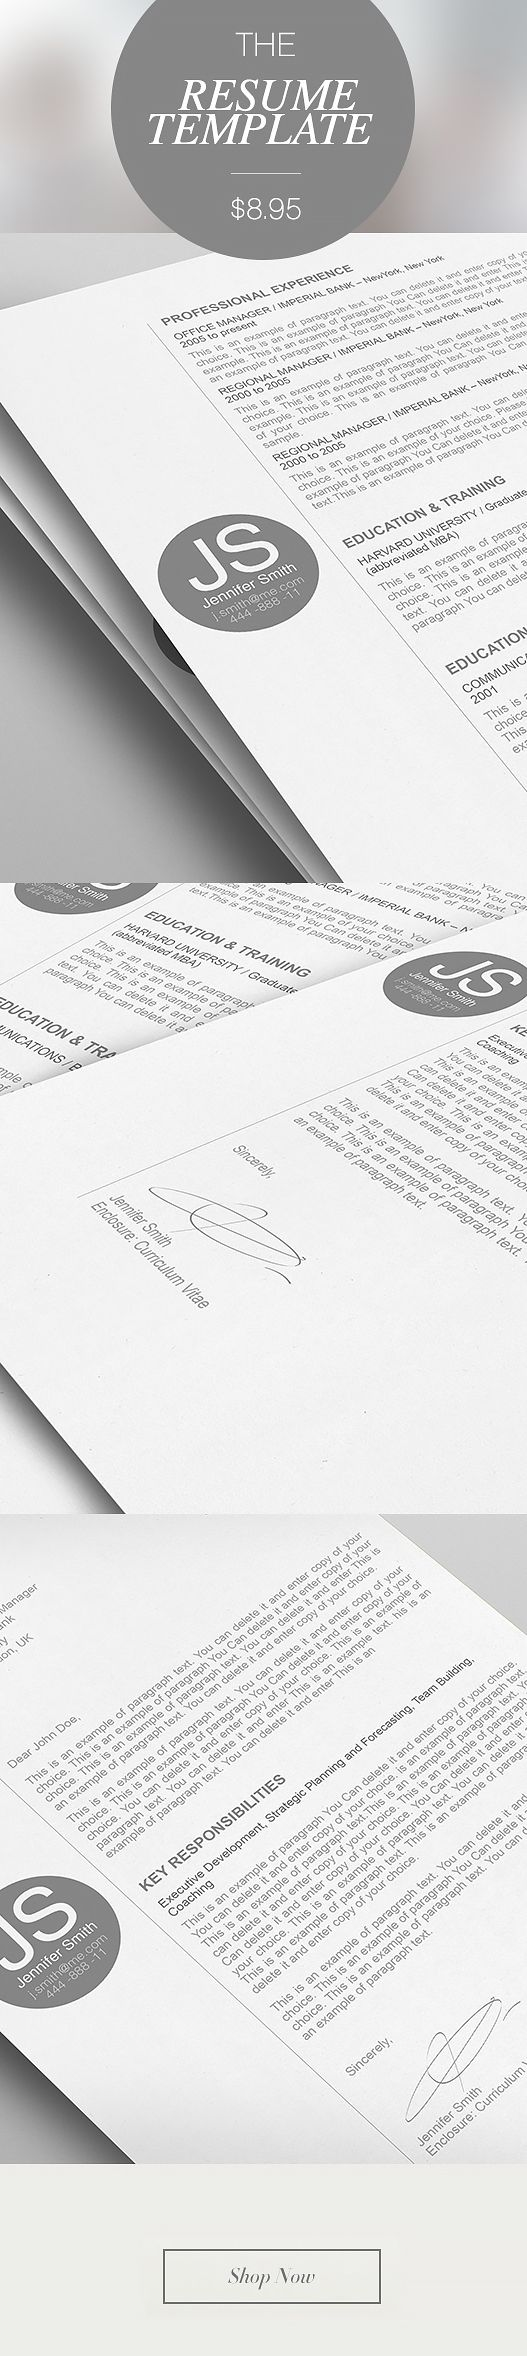 20 best images about elegant resume templates on pinterest